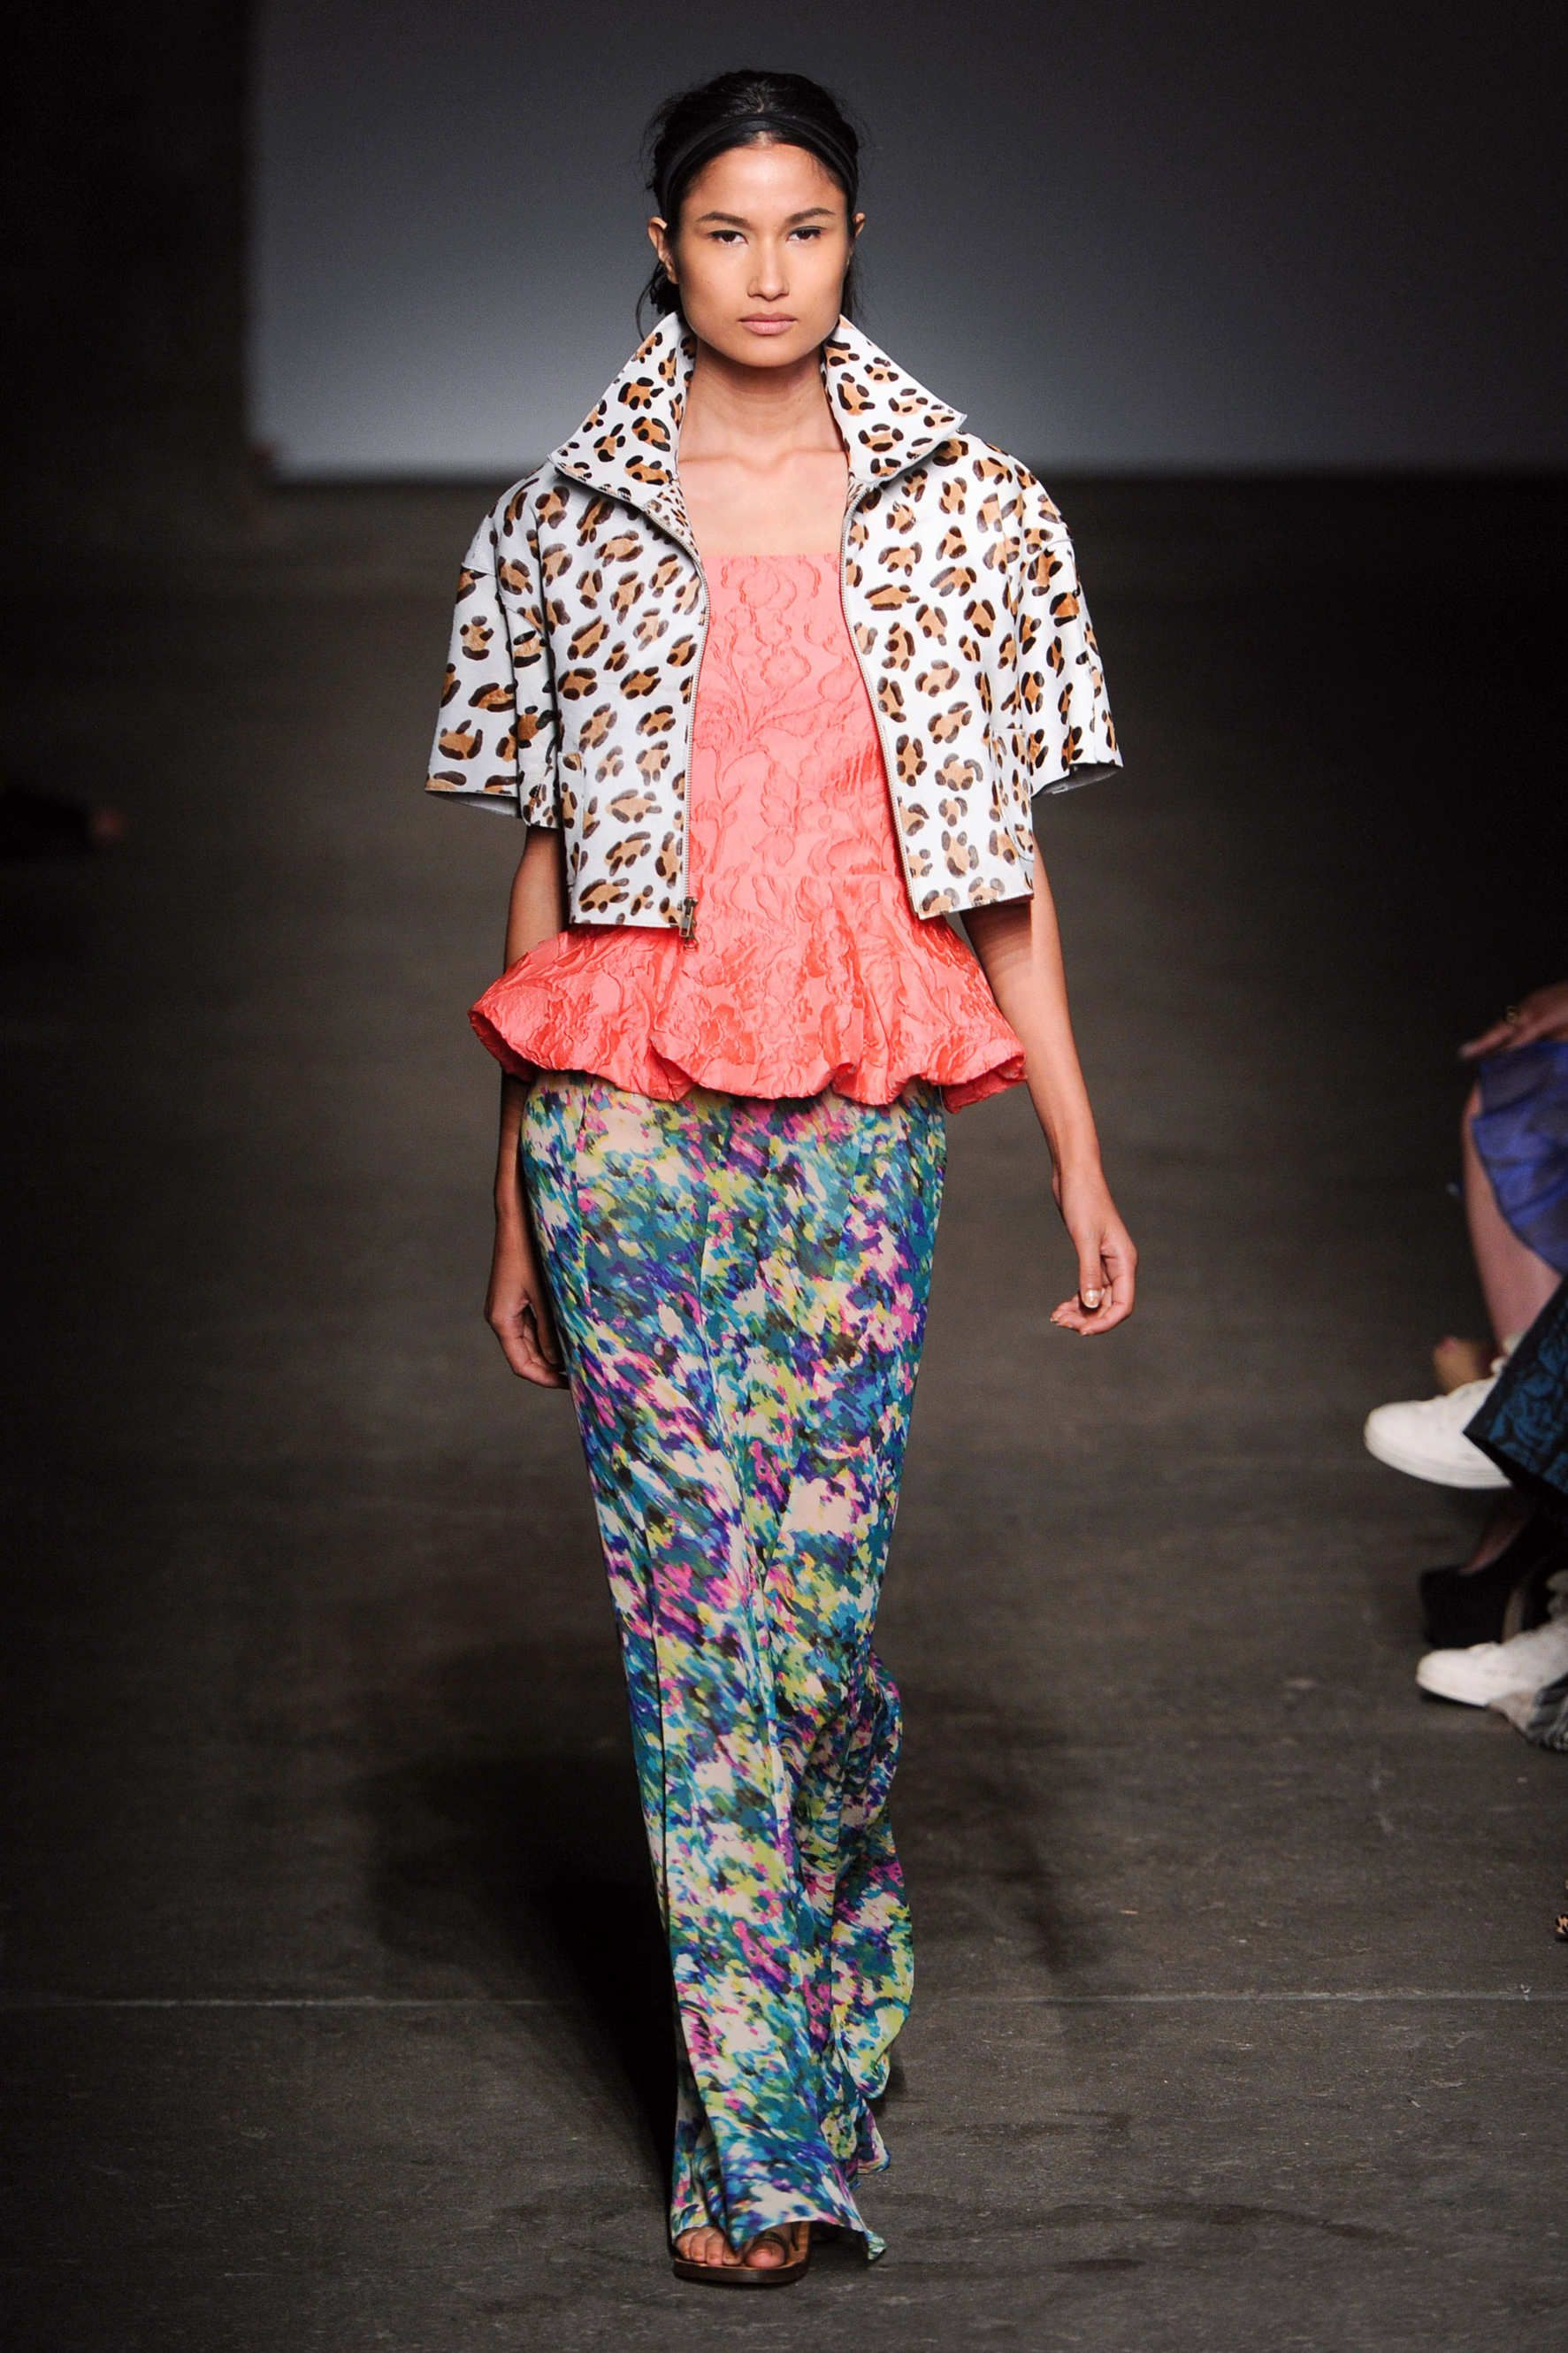 Buy Reese tracy spring runway pictures trends